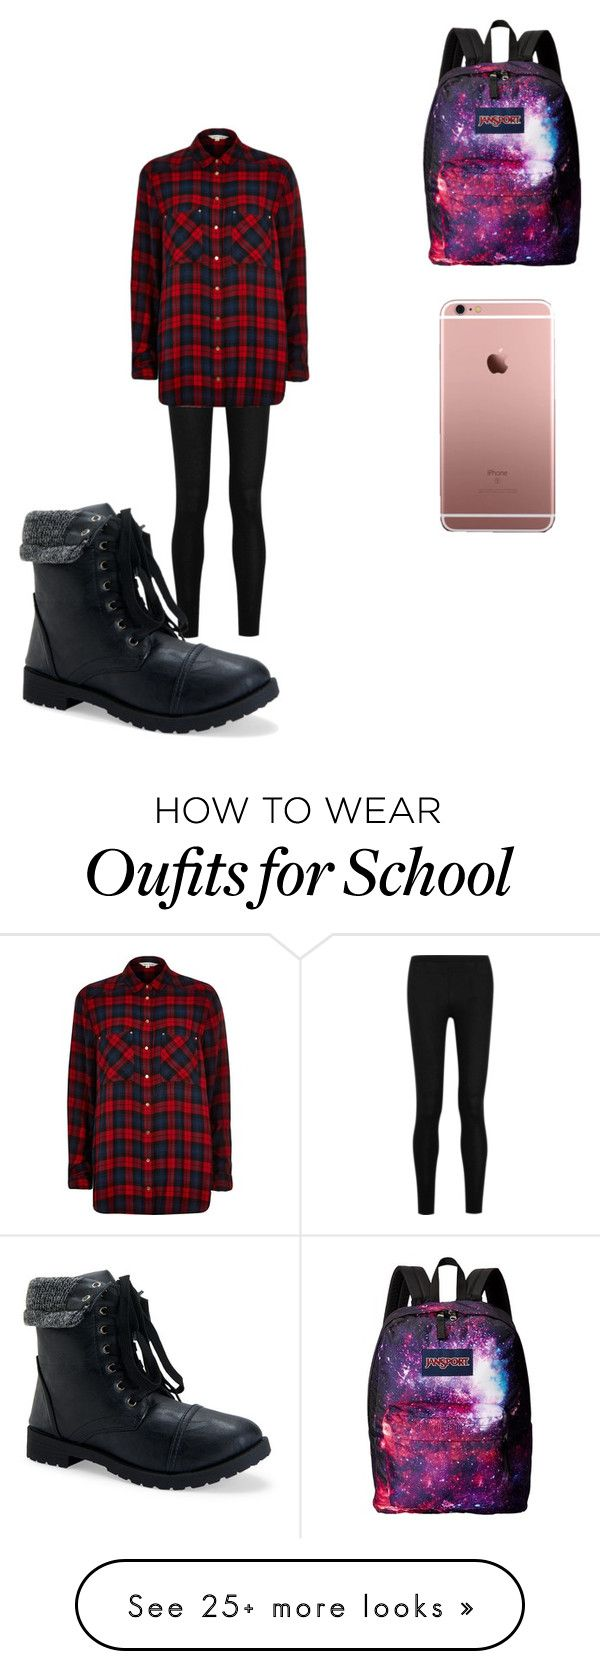 """""""School outfit"""" by nerdgirl56 on Polyvore featuring moda, Donna Karan, River Island, Aéropostale ve JanSport"""